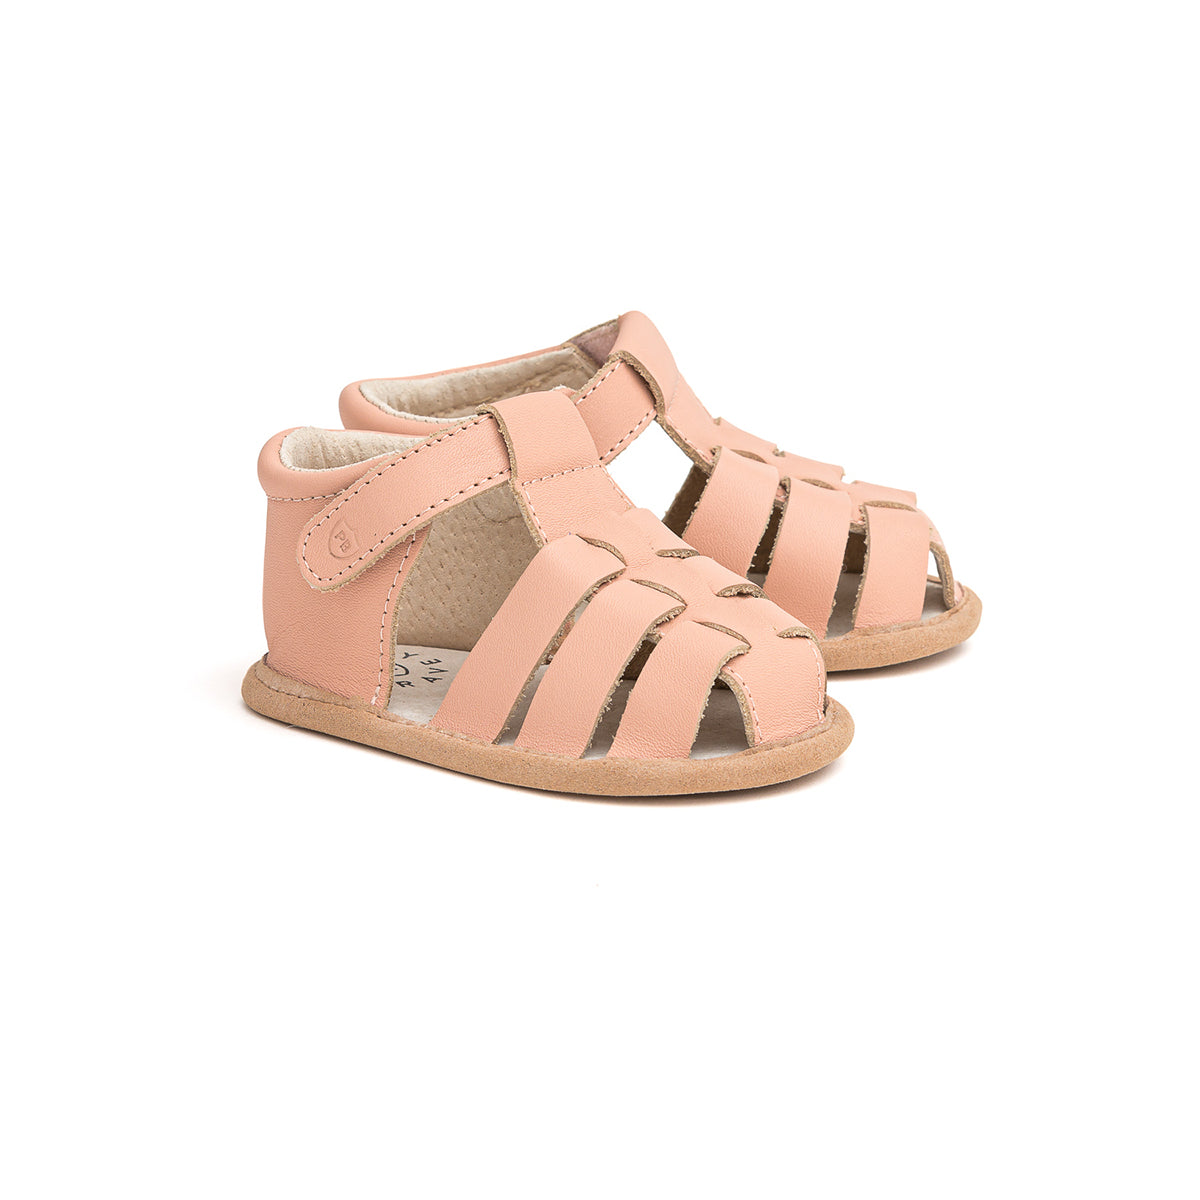 Pretty Brave Rio Sandal in Salmon